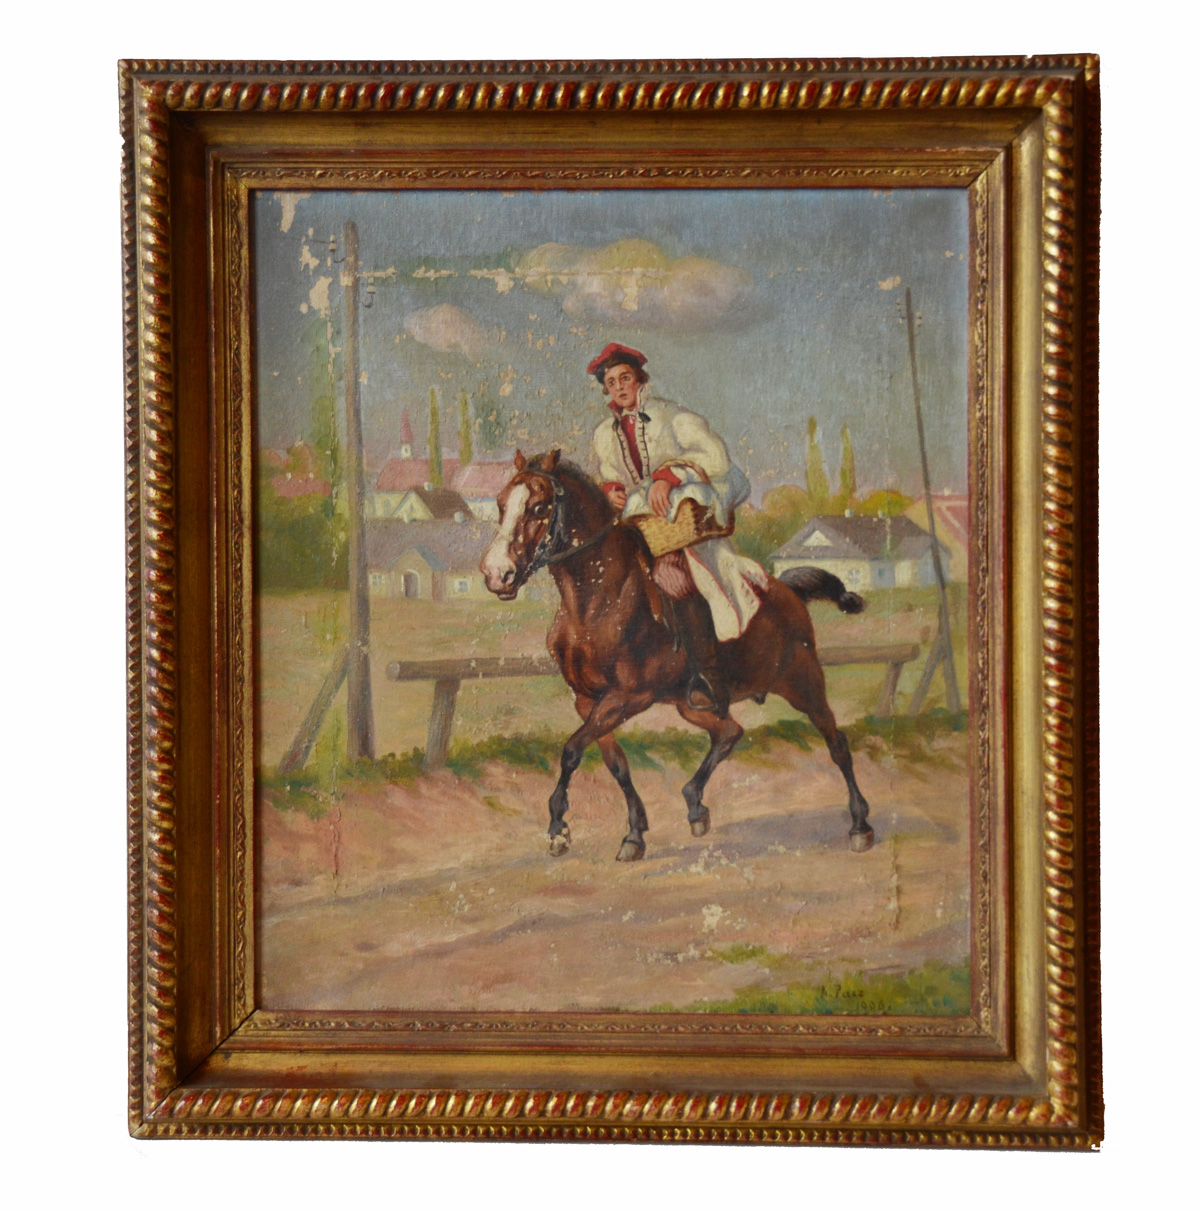 Antique 1900s Equestrian Oil Painting Stunning